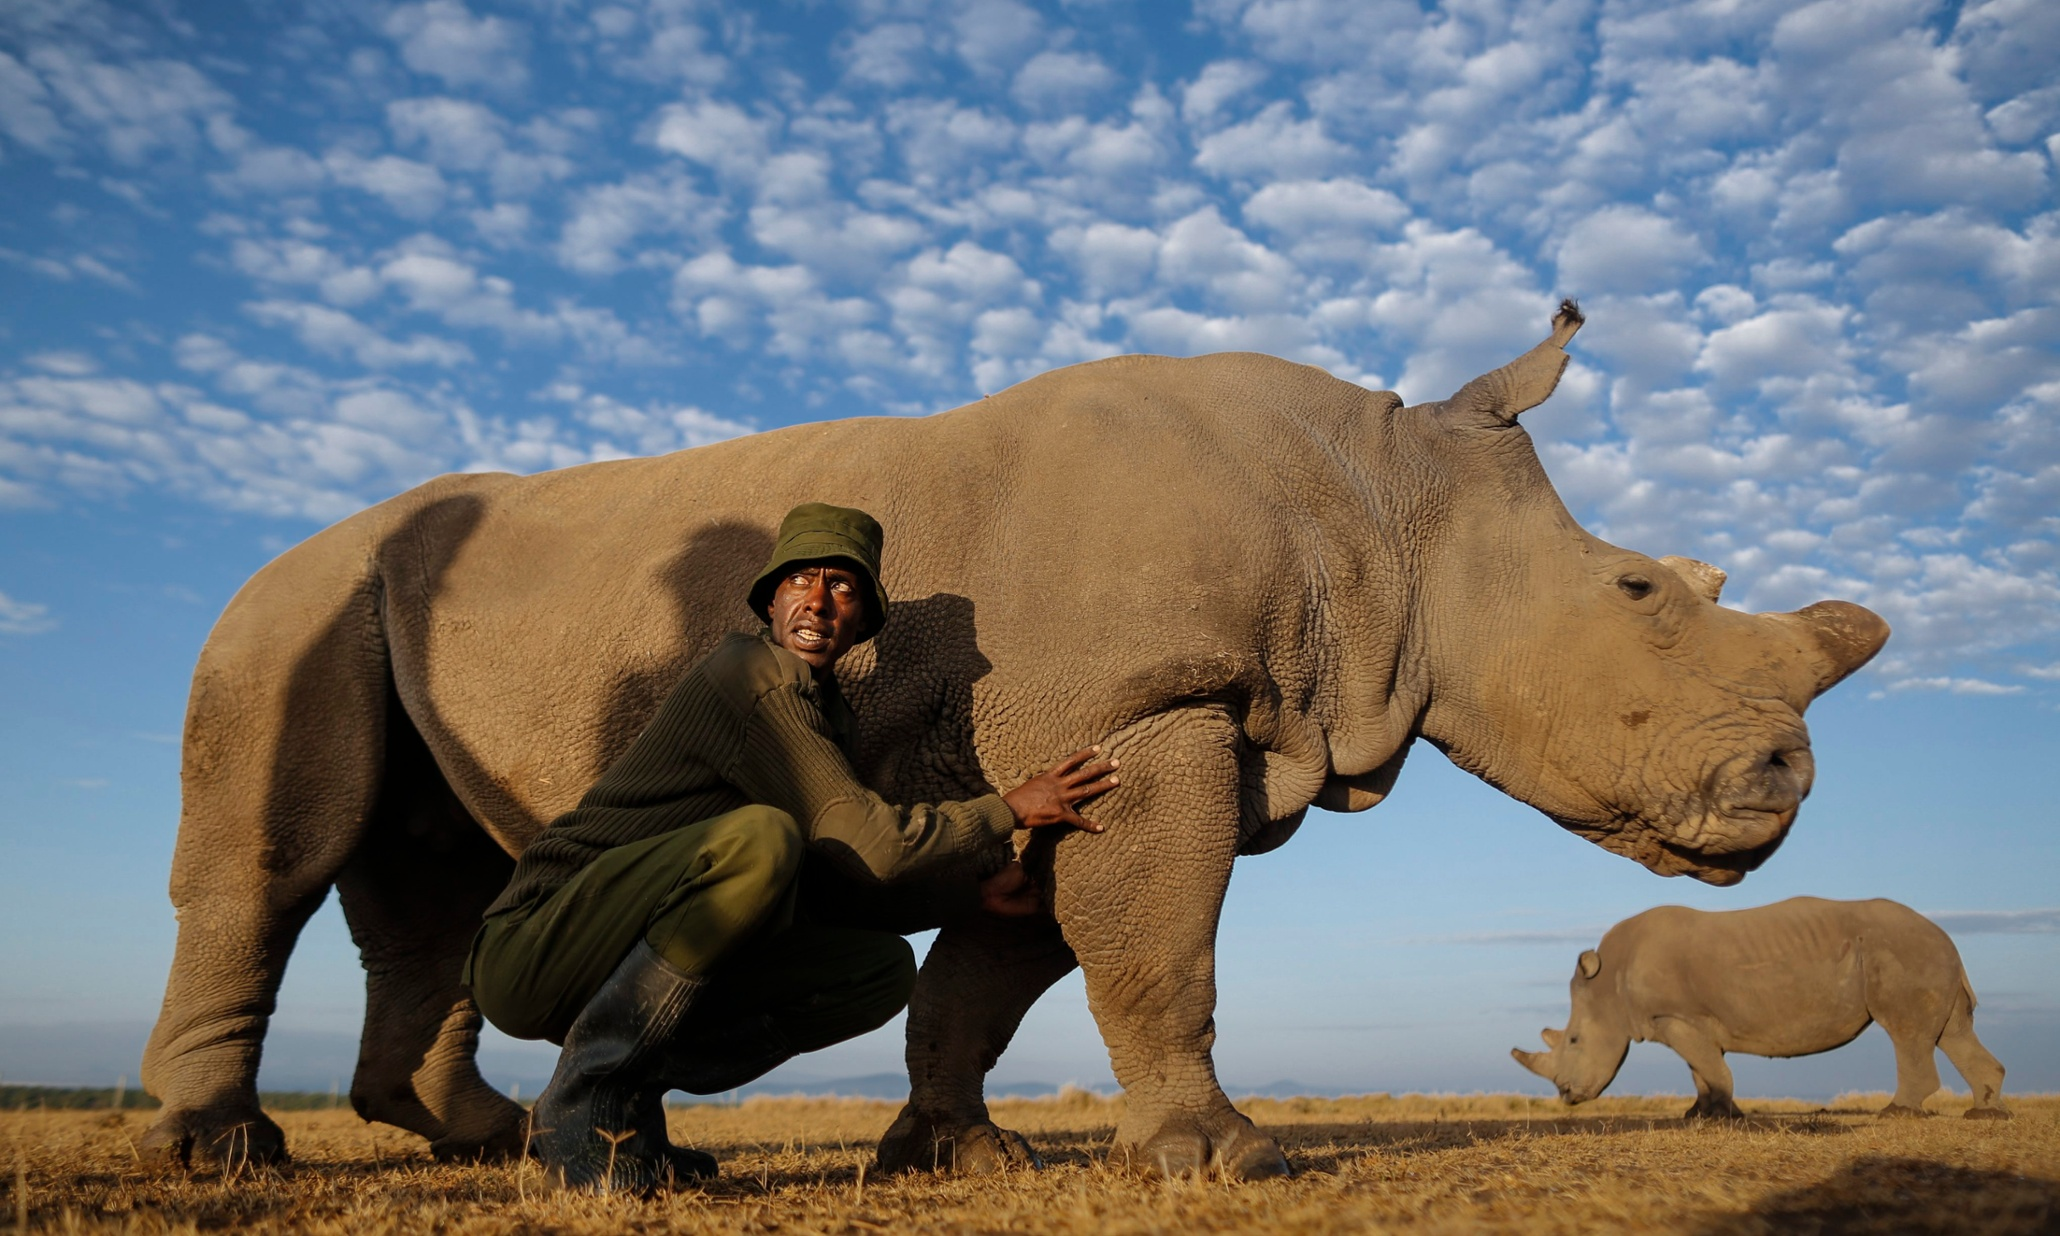 Can we save the rhino from poachers with a 3D printer?